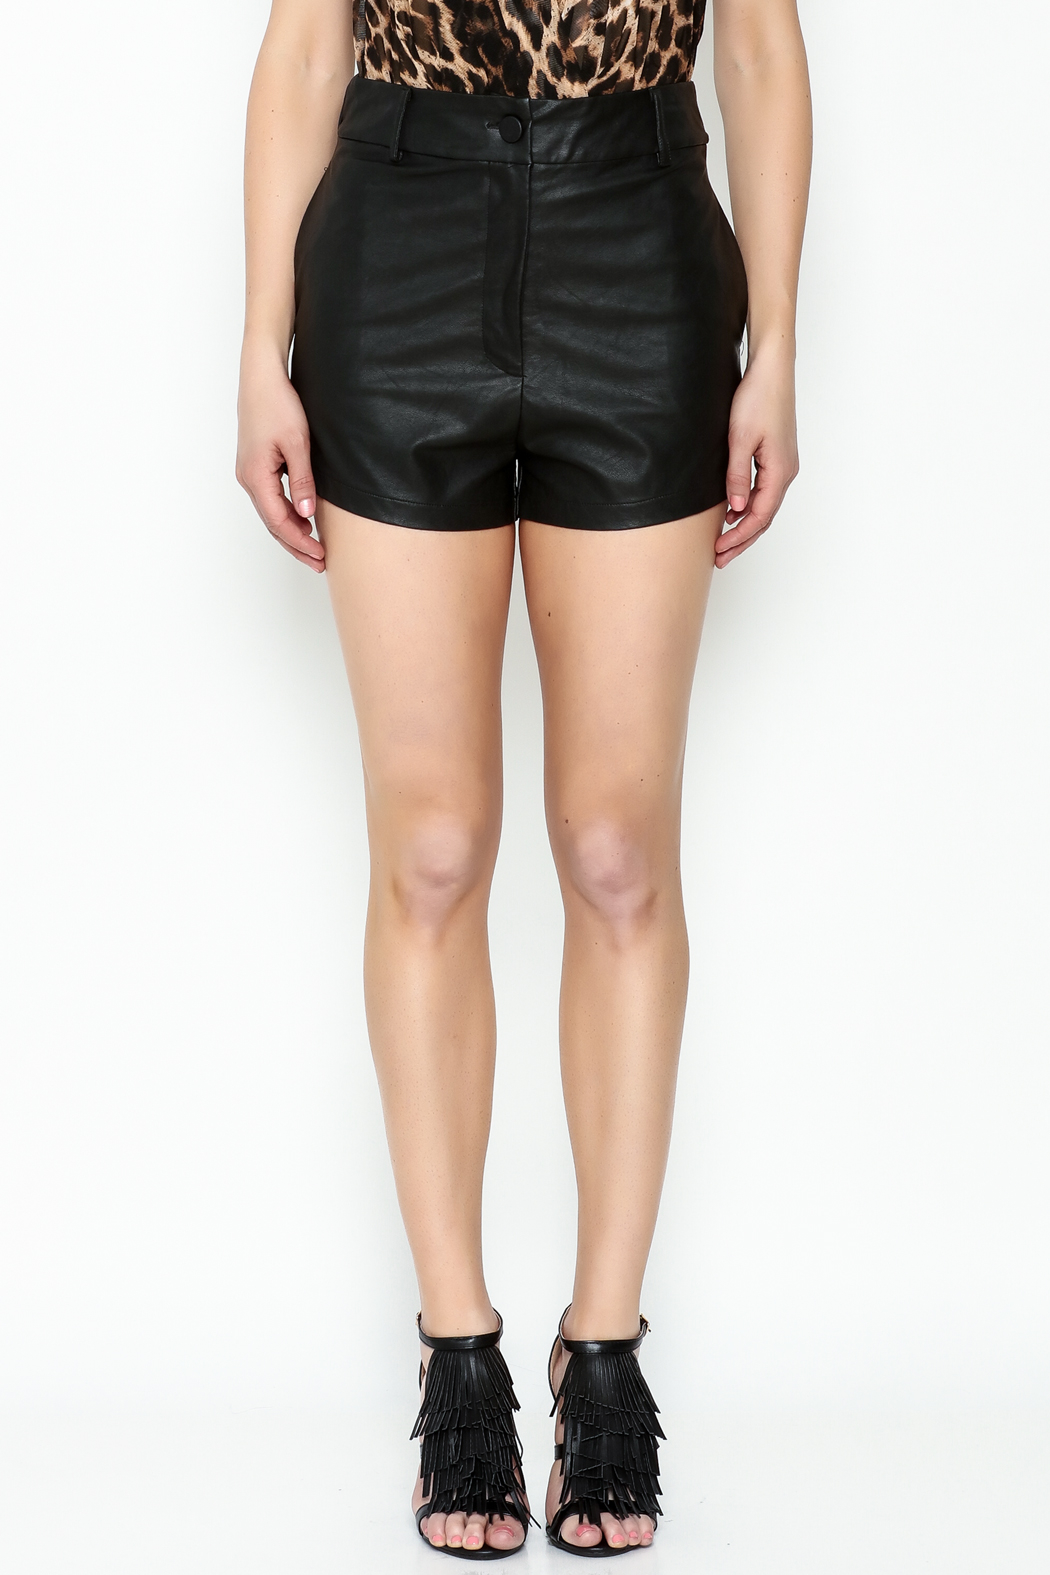 Olivaceous Black Leather Shorts - Front Full Image